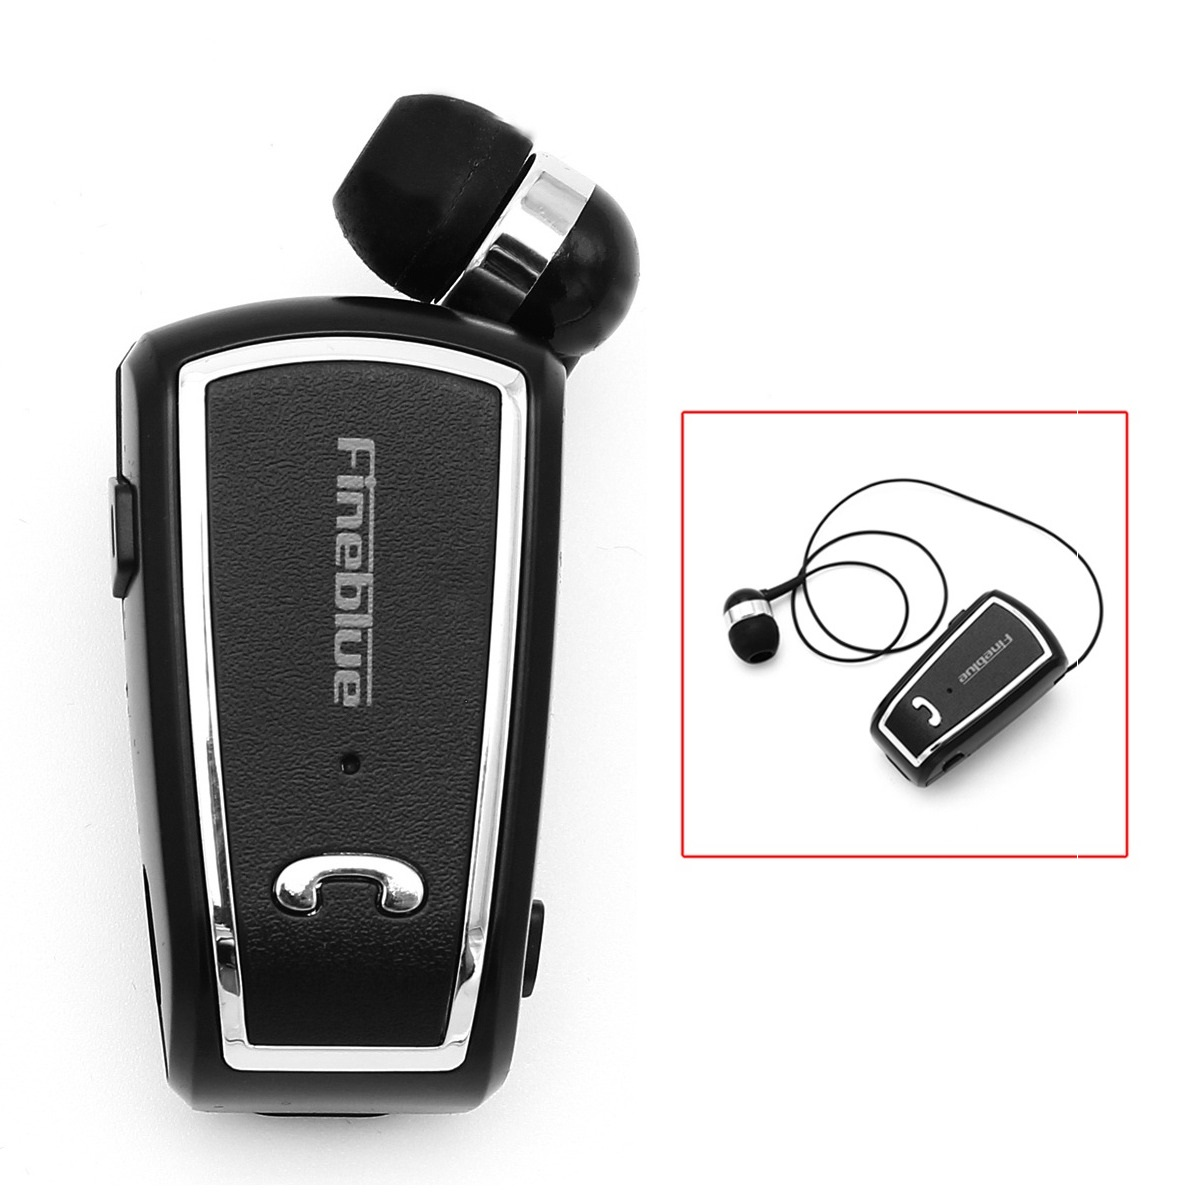 Fineblue Bluetooth Headset Fv3 Price In Pakistan